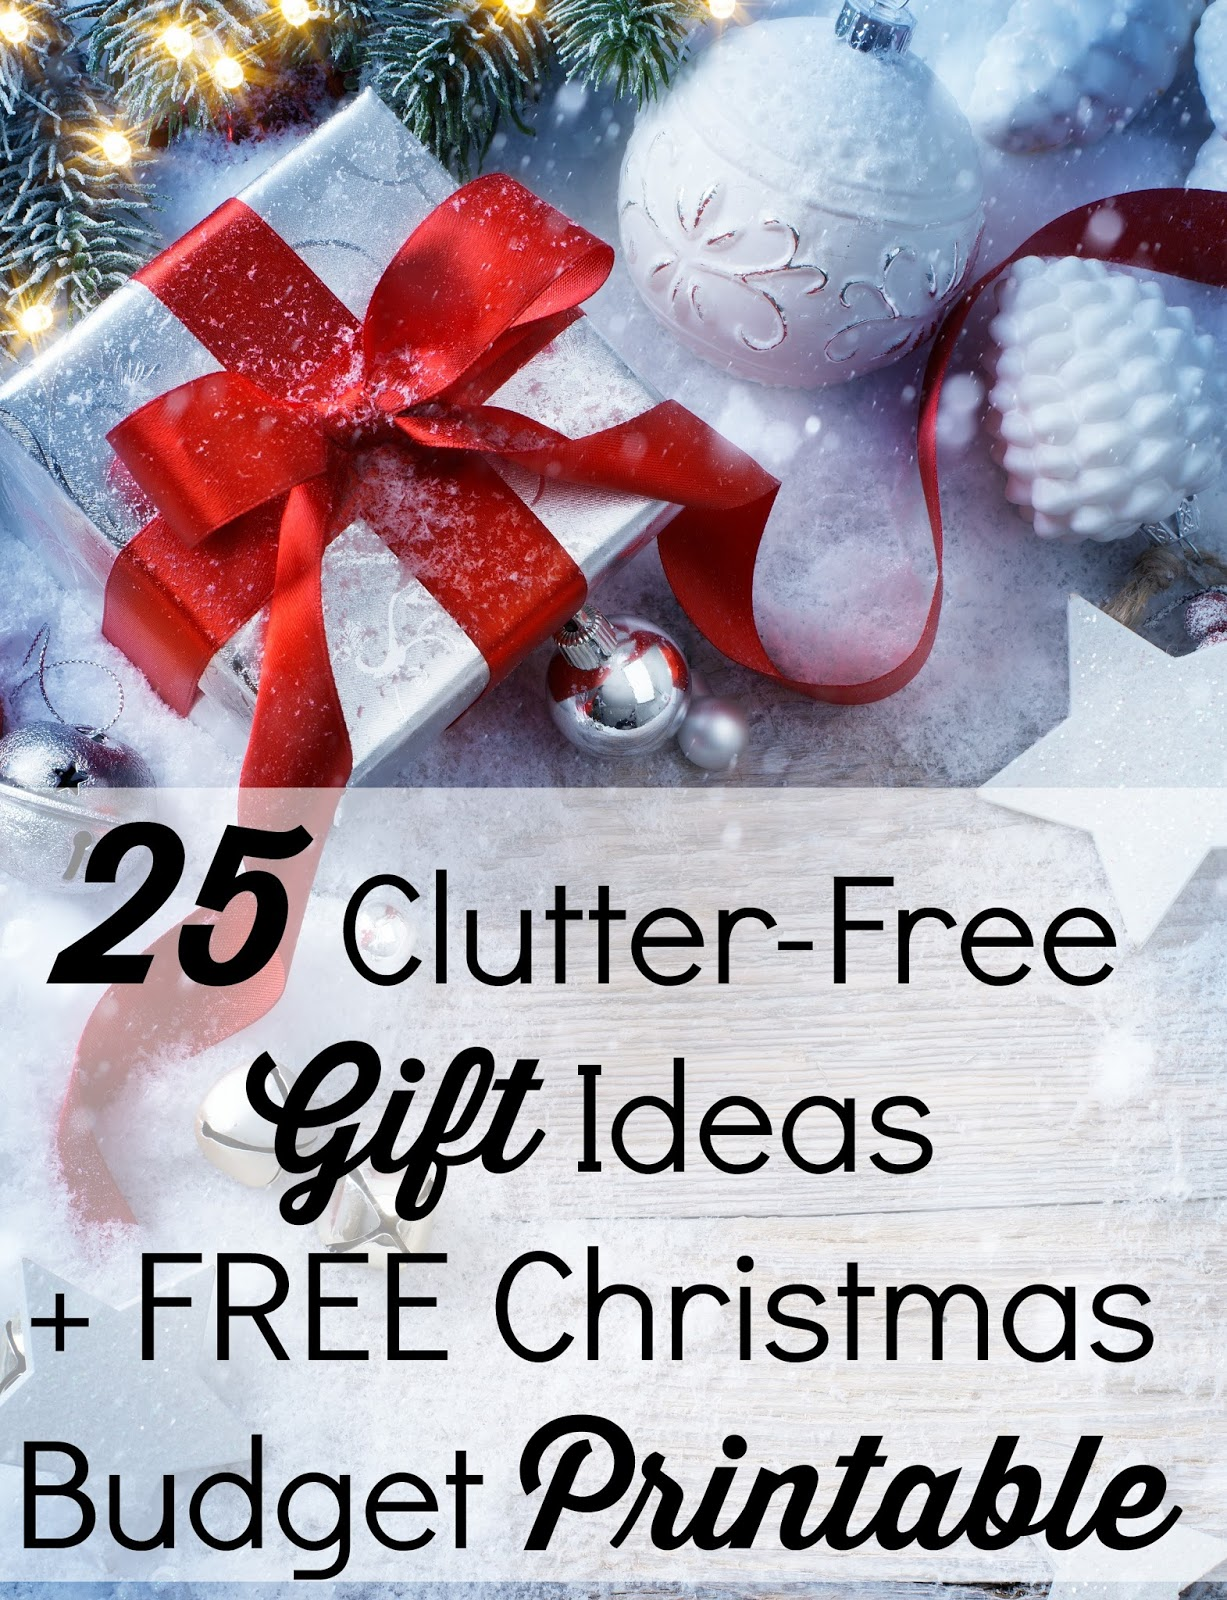 Wonderful Free Gift Ideas For Christmas Part - 6: 25 Clutter-Free Gift Ideas + FREE Christmas Budget Printable